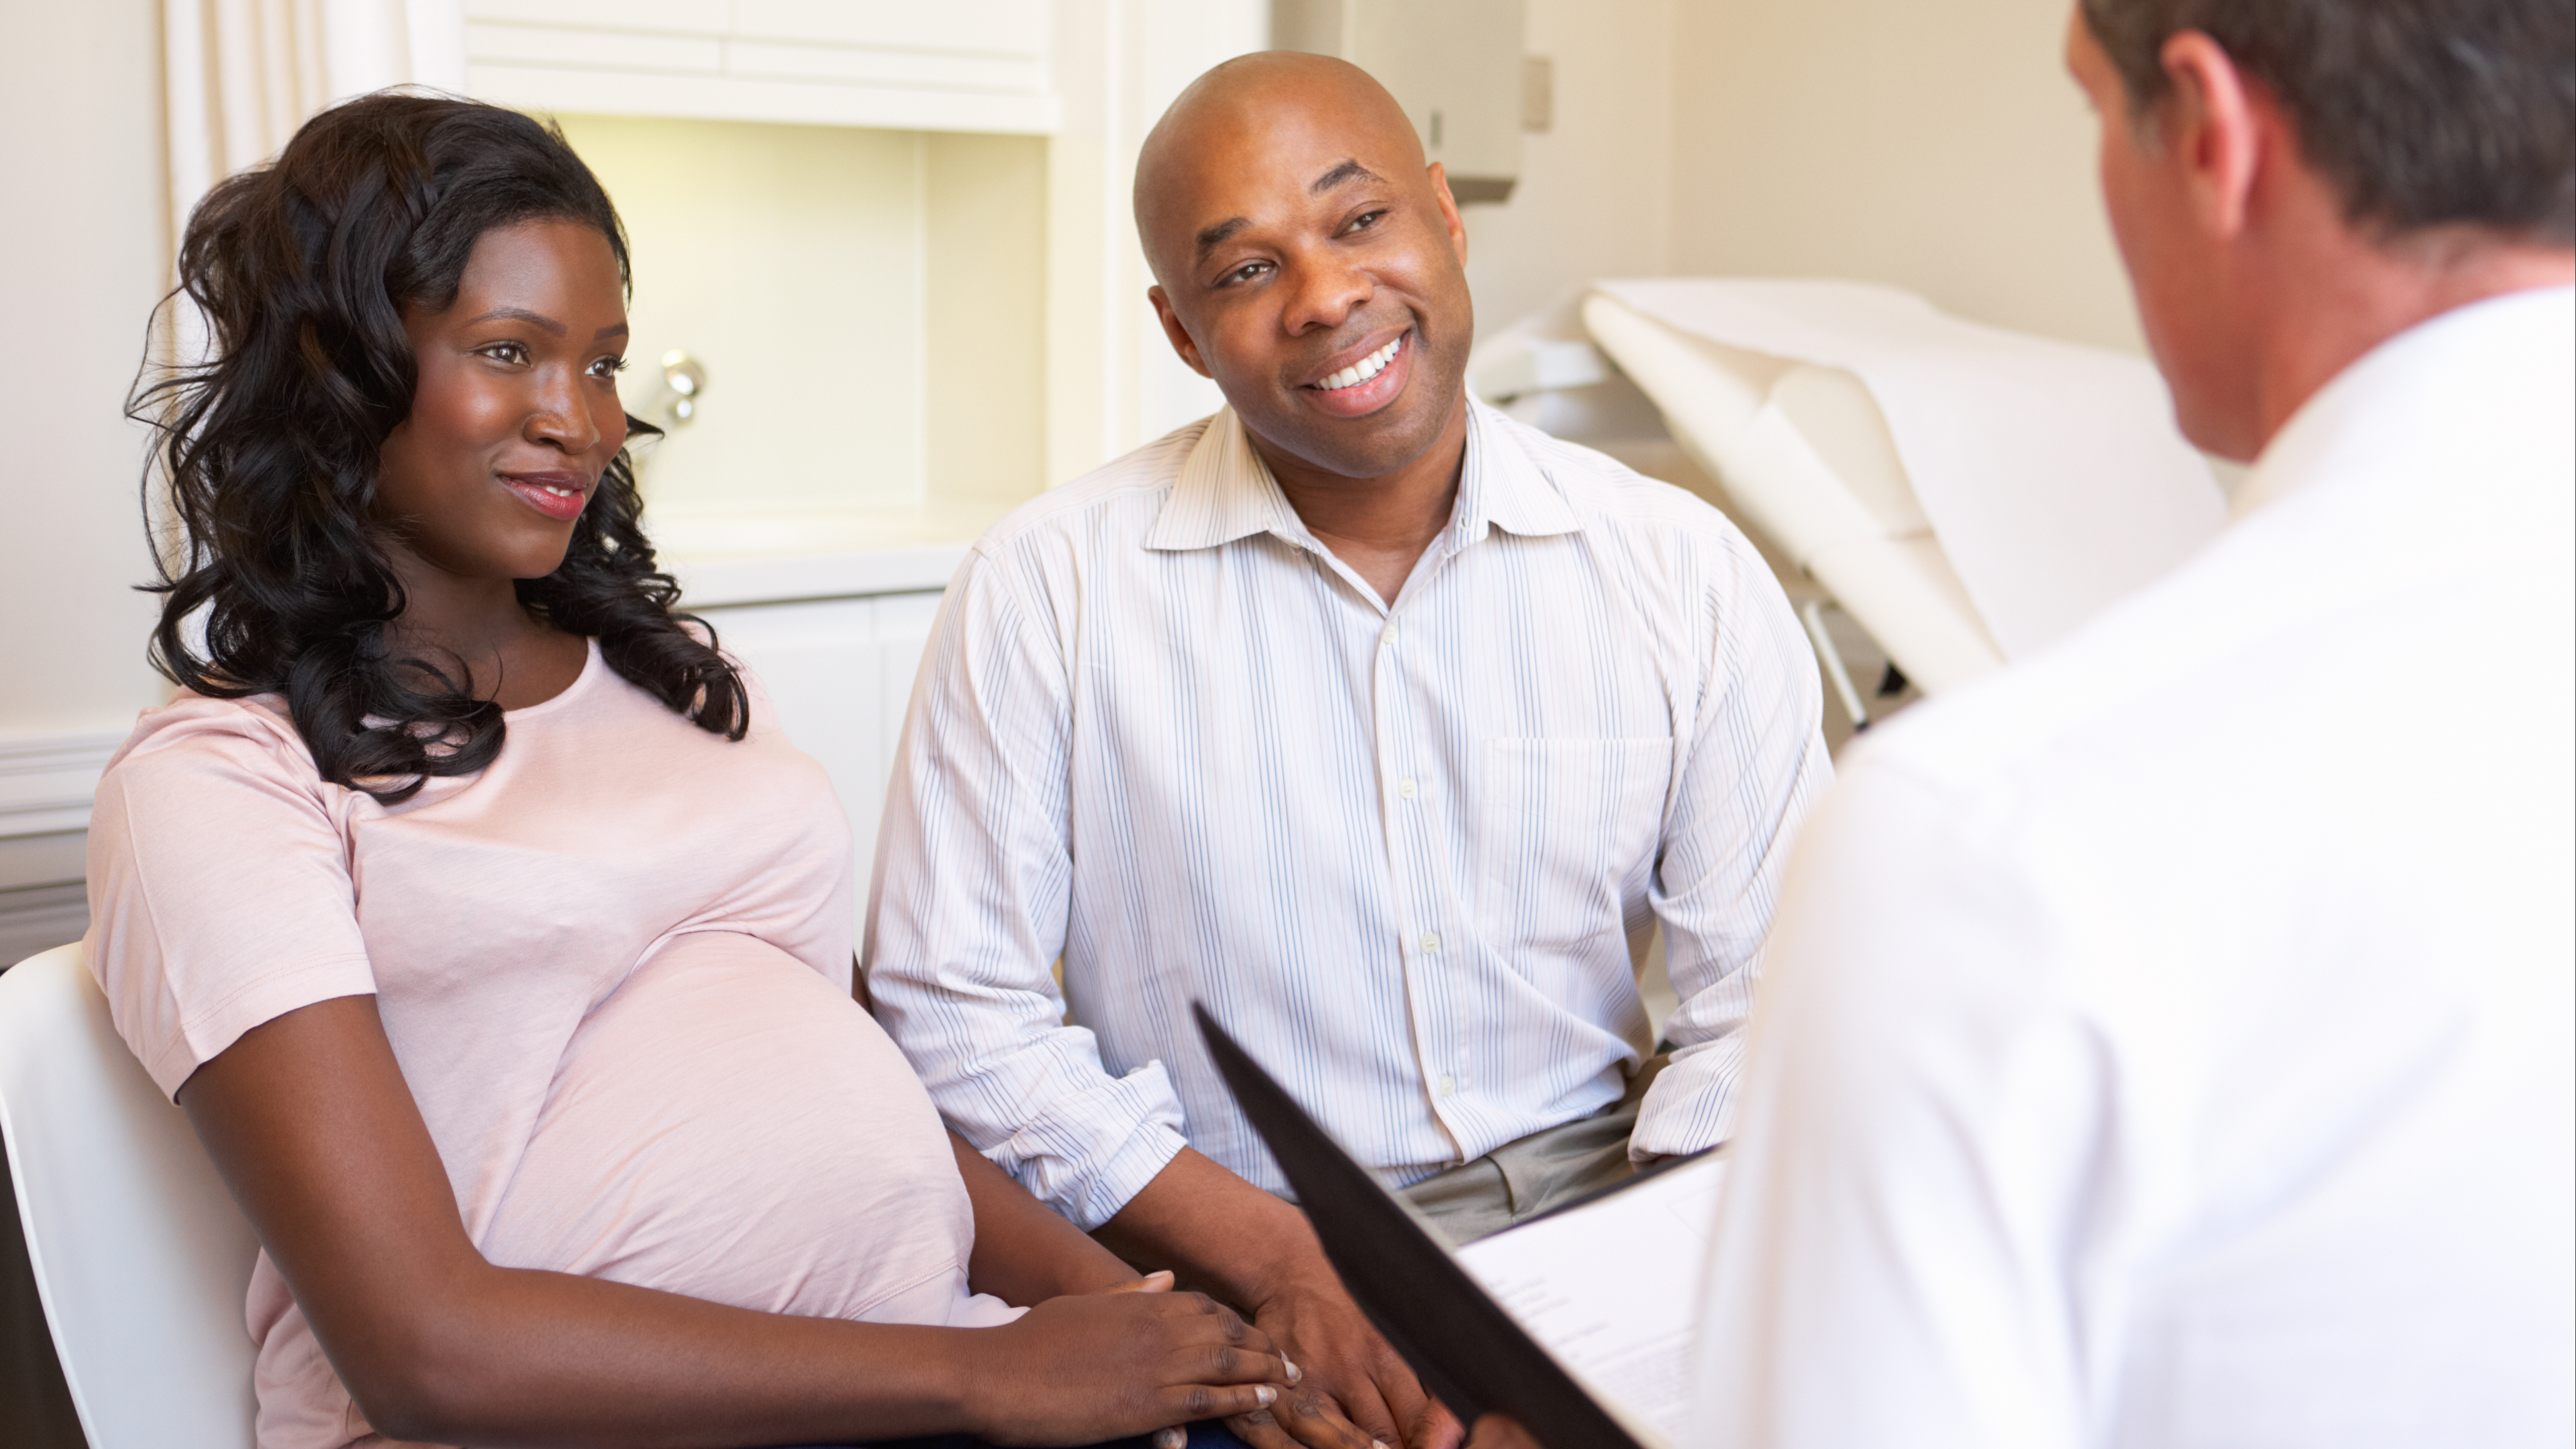 a young pregnant couple meeting with a physician, doctor for an appointment in an exam room